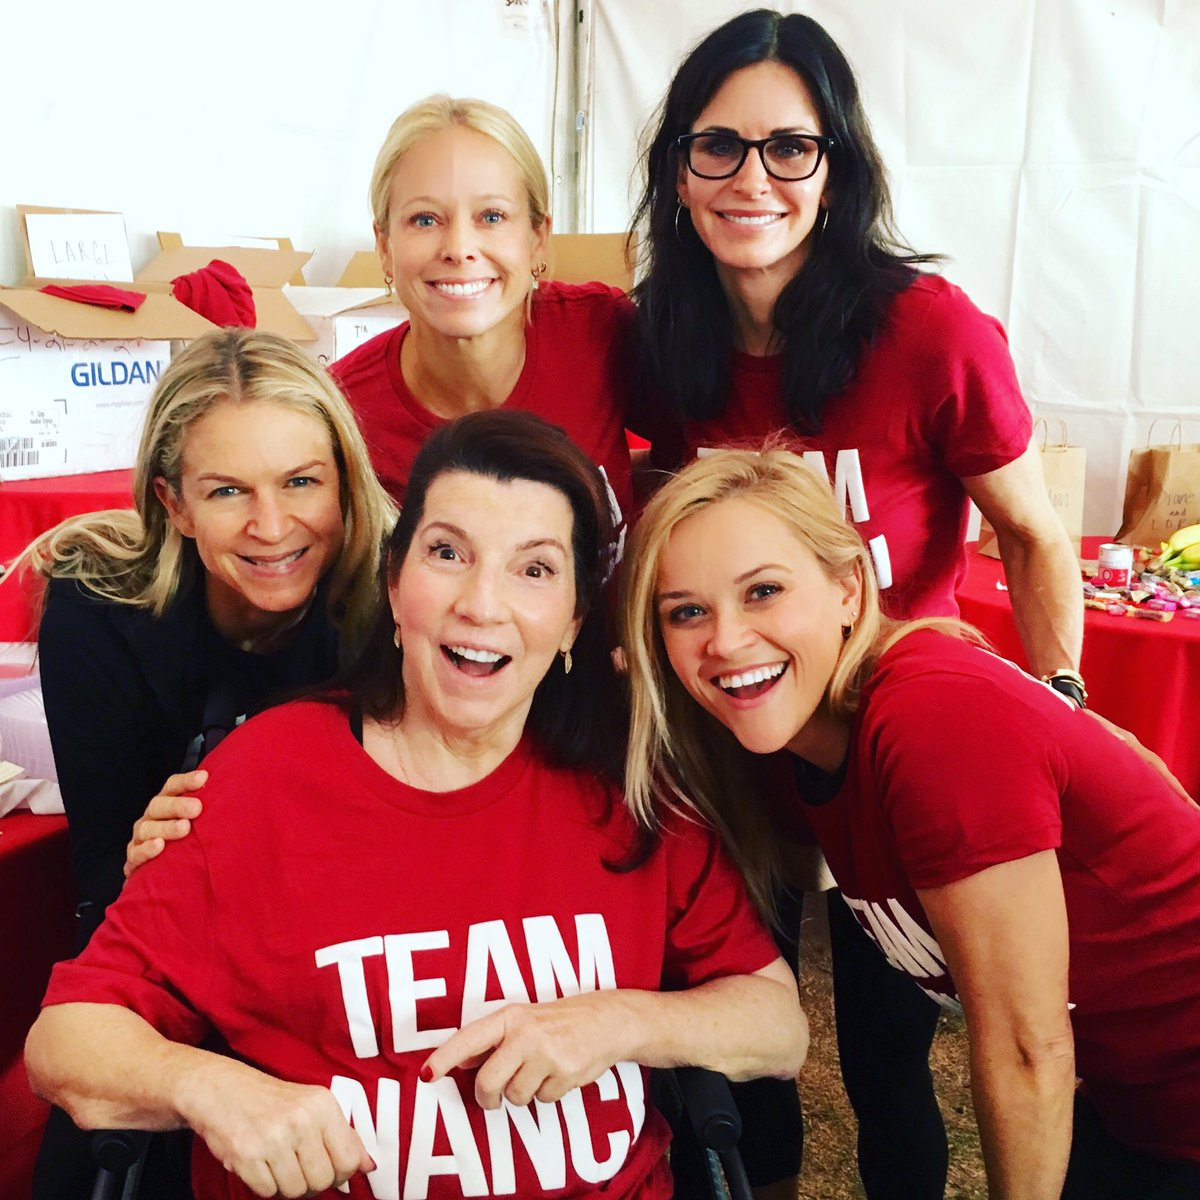 So proud to walk today in support of our amazing friend, Nanci! #TeamNanci https://t.co/tmqKKMS63N